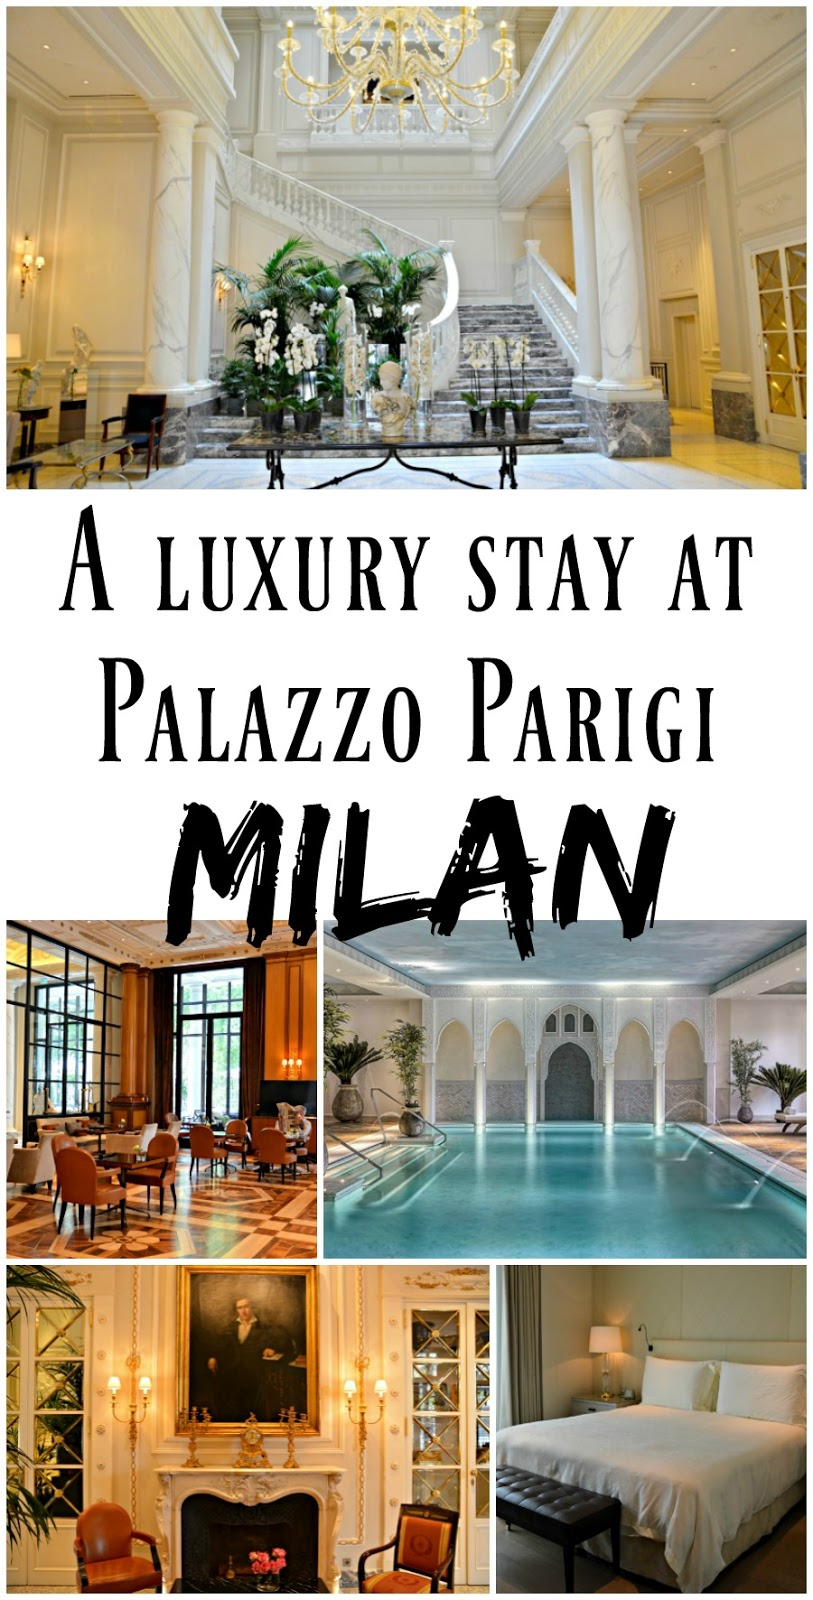 Things to do in Milano, Italy: Stay at Palazzo Parigi Grand Hotel & Spa, one of the finest luxury hotels in the city! With a grand marble lobby, incredible spa, and beautiful Milanese rooms, it is the perfect hotel for a stay in Milan. It's also located right in the heart of the fashion district and really close to all of the major attractions!